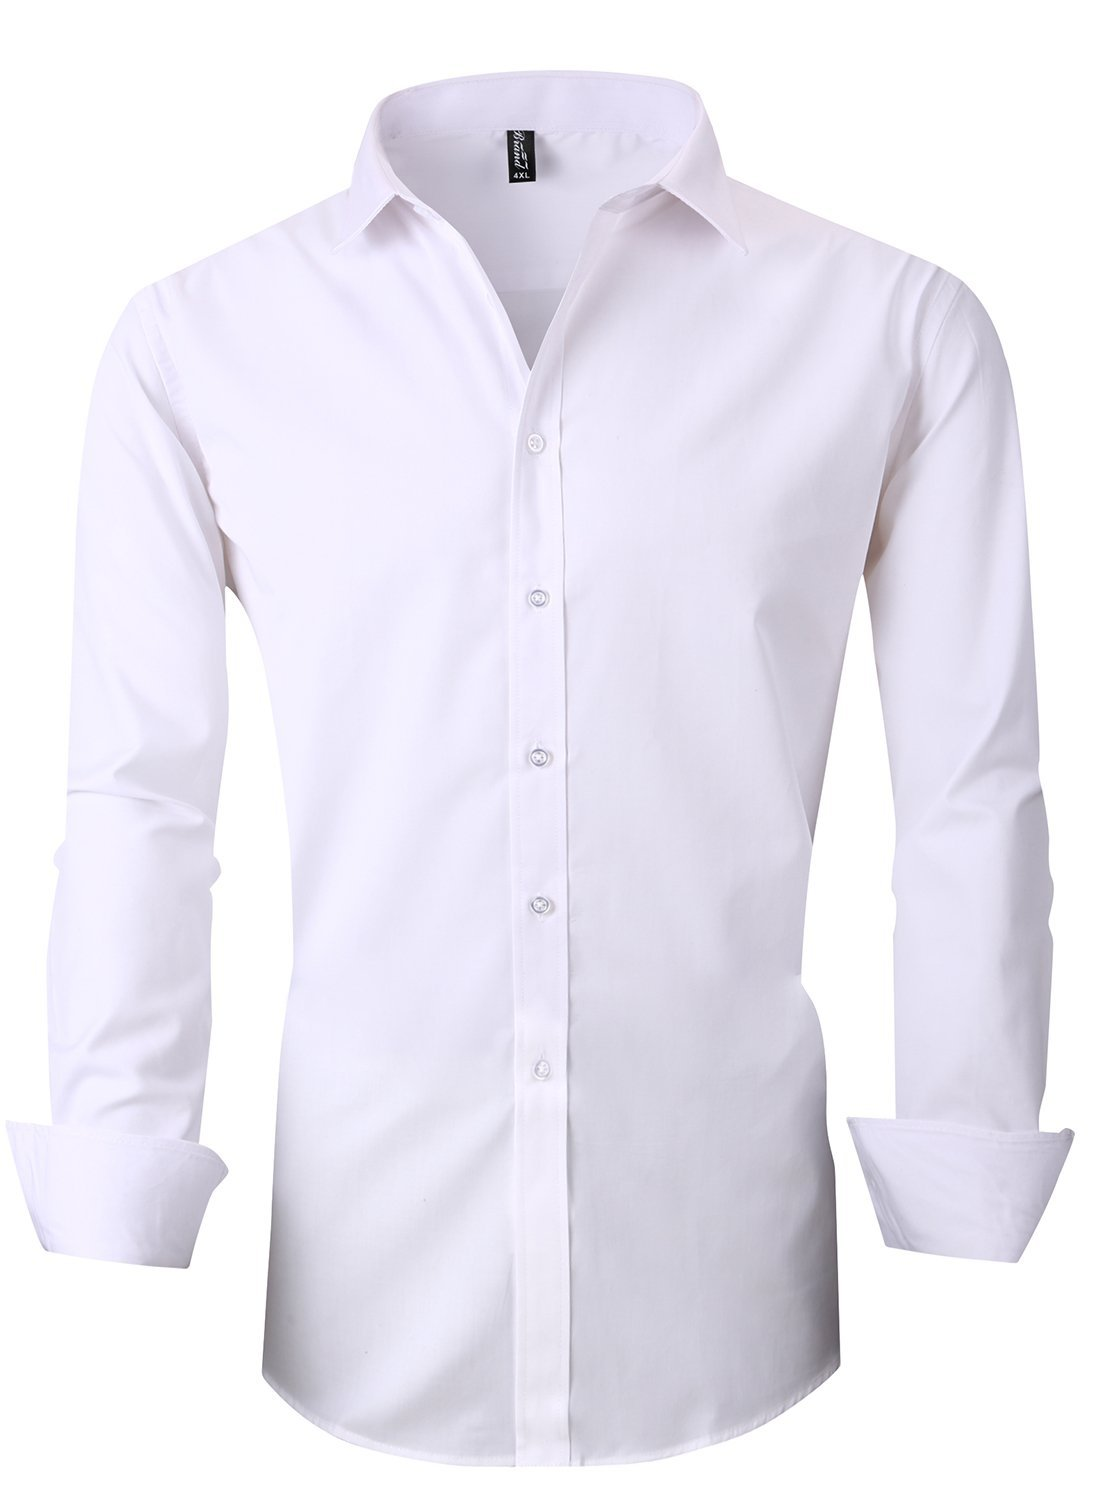 JHVYF Men's Casual Long Sleeve Business Slim Fit Button Down Dress Shirts 5618 White AS 5XL/US XL